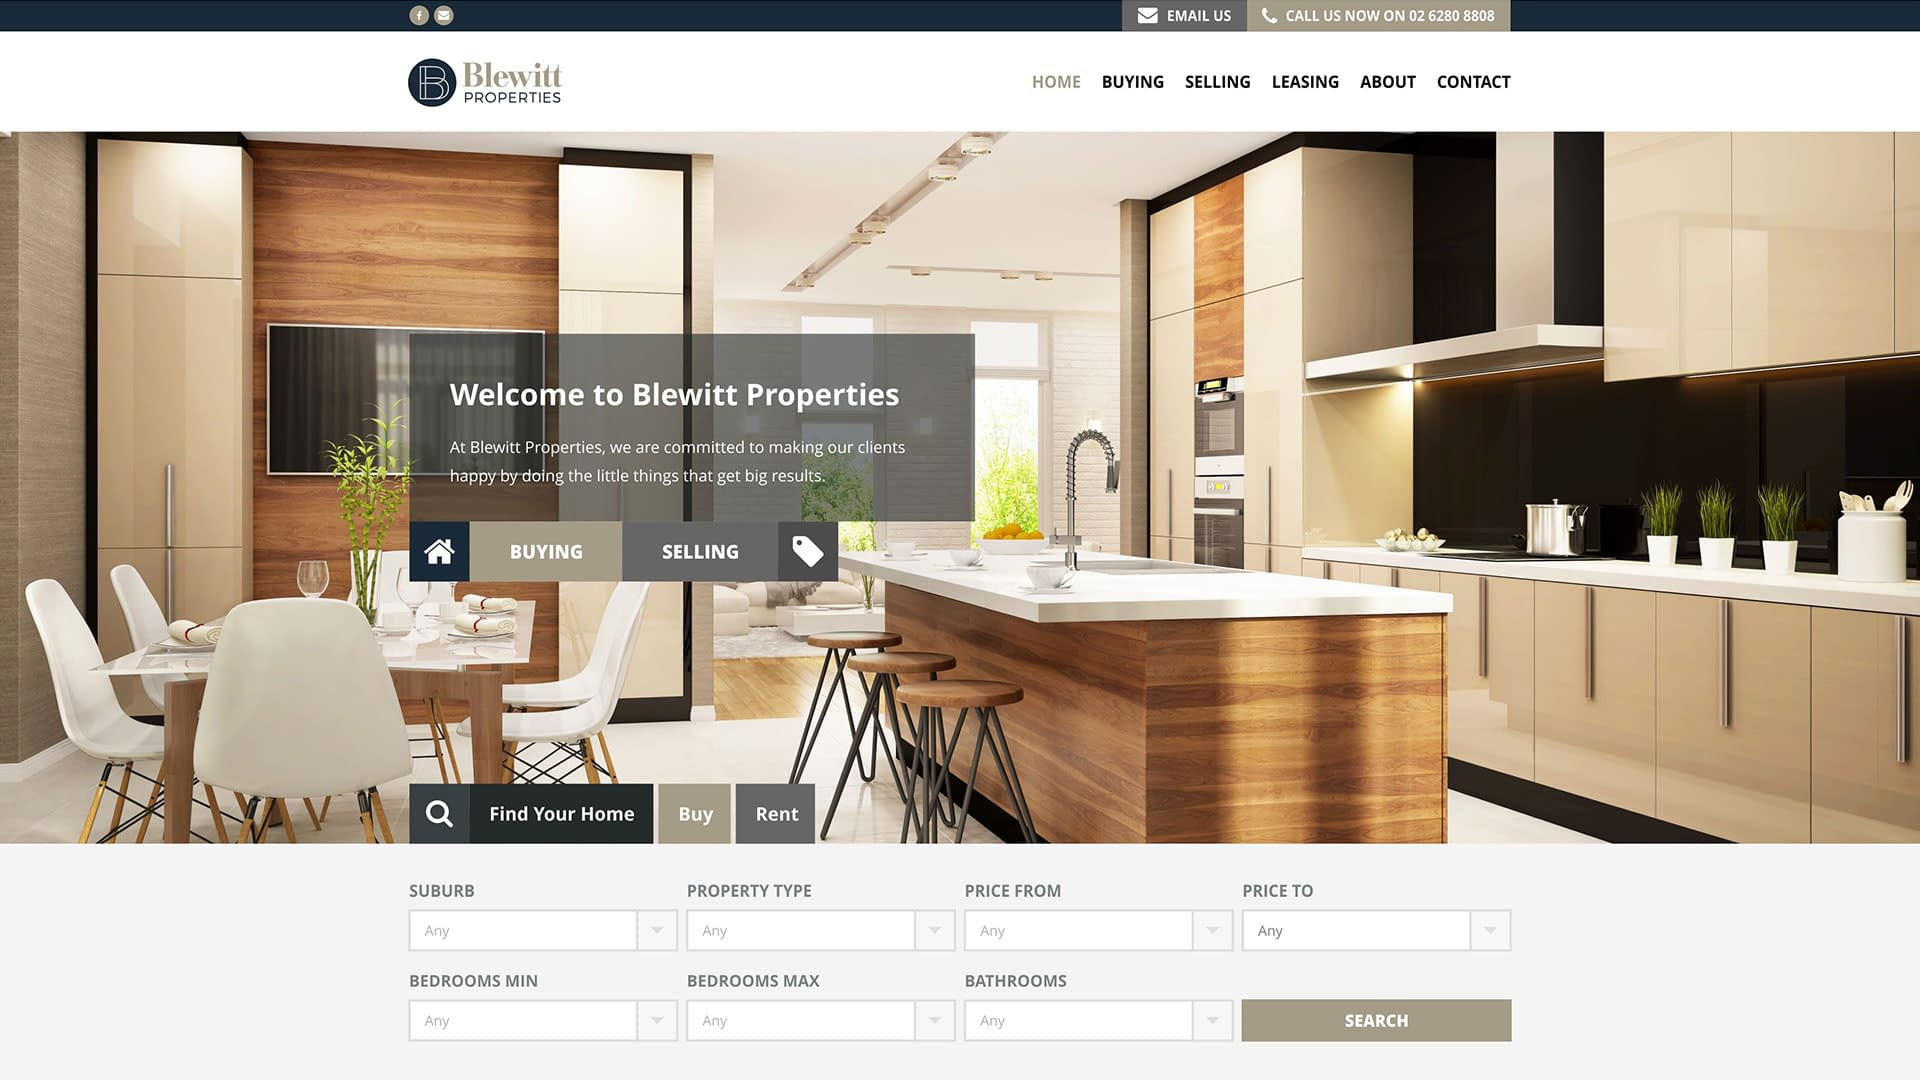 Blewitt Properties real estate website